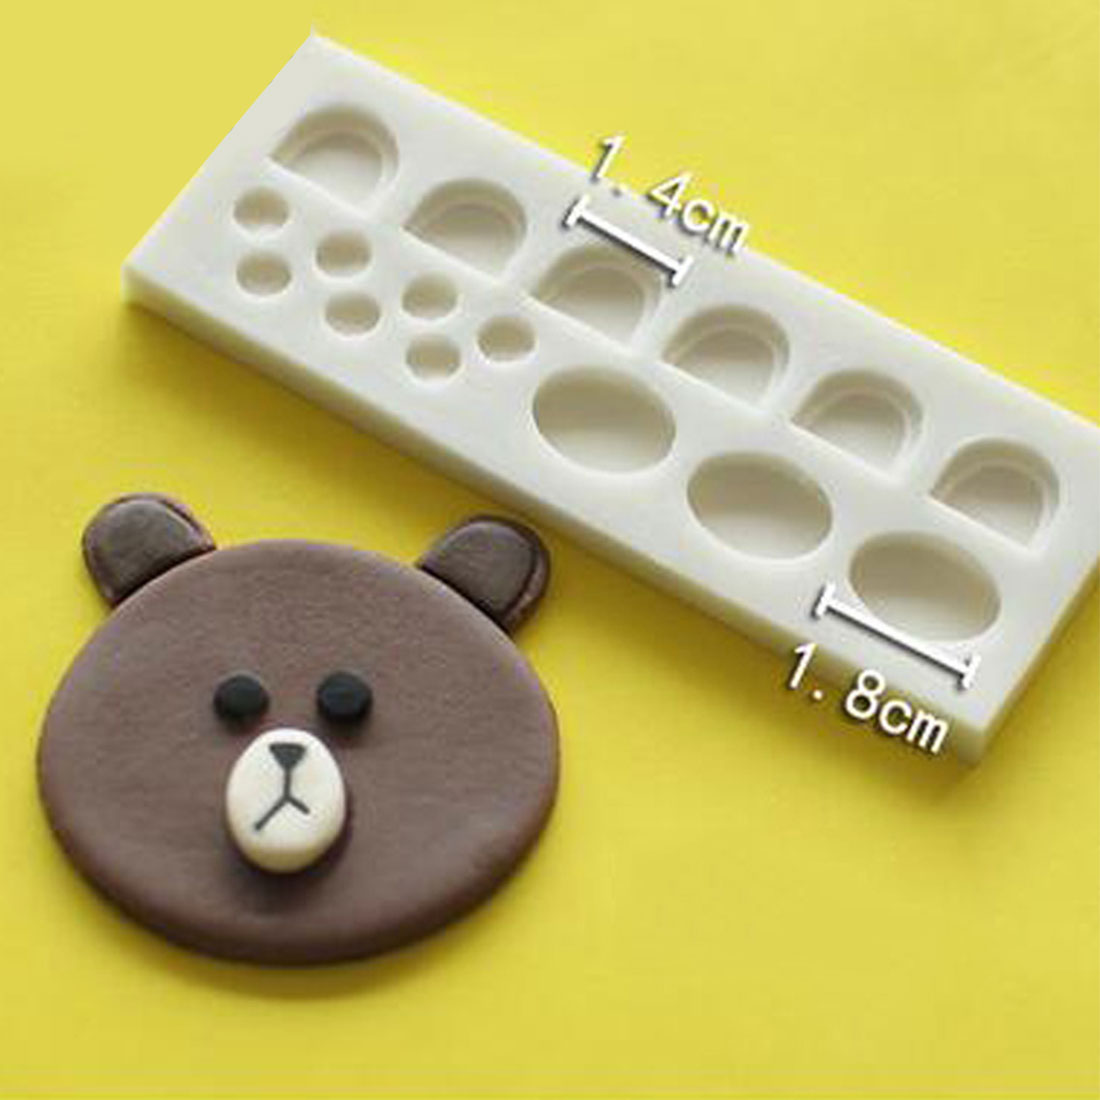 DIY Cartoon Animal Bear Toy 3D Silicone Mold Fondant Soap Cupcake Jelly Candy Chocolate Decoration Baking Tool Moulds